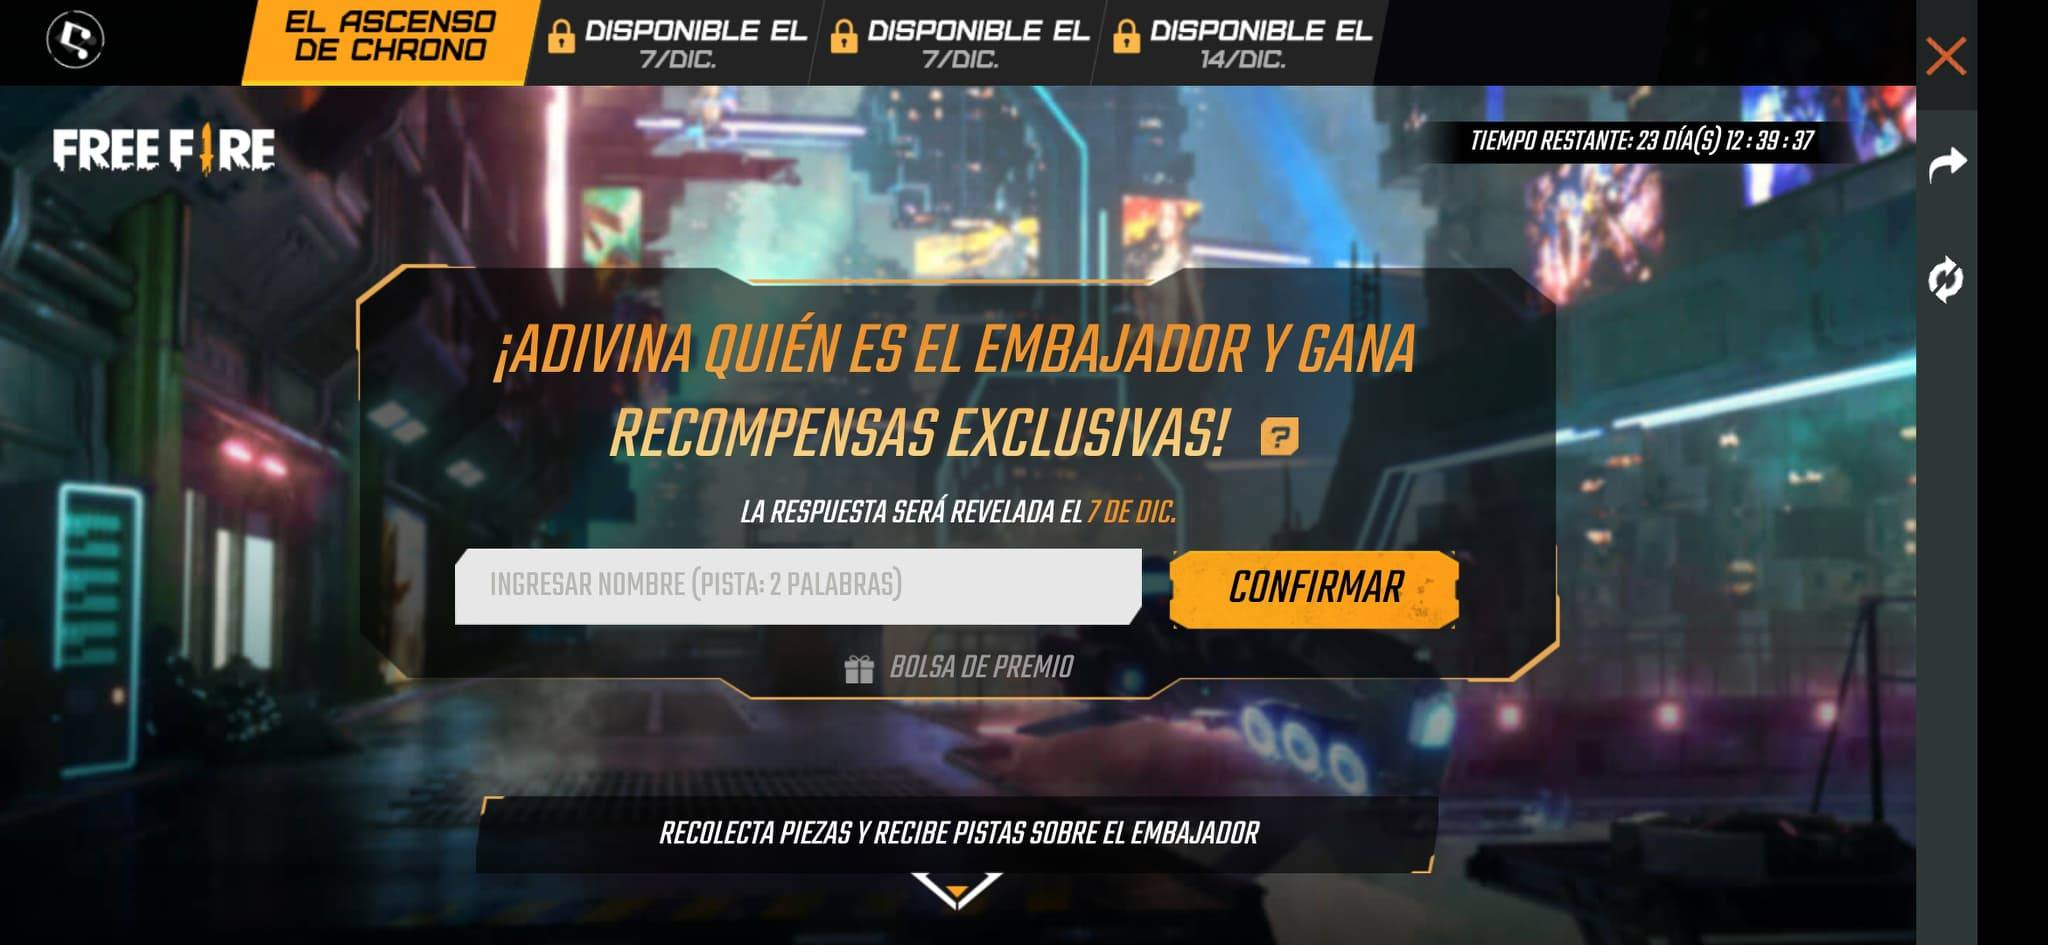 Free Fire embajador secreto